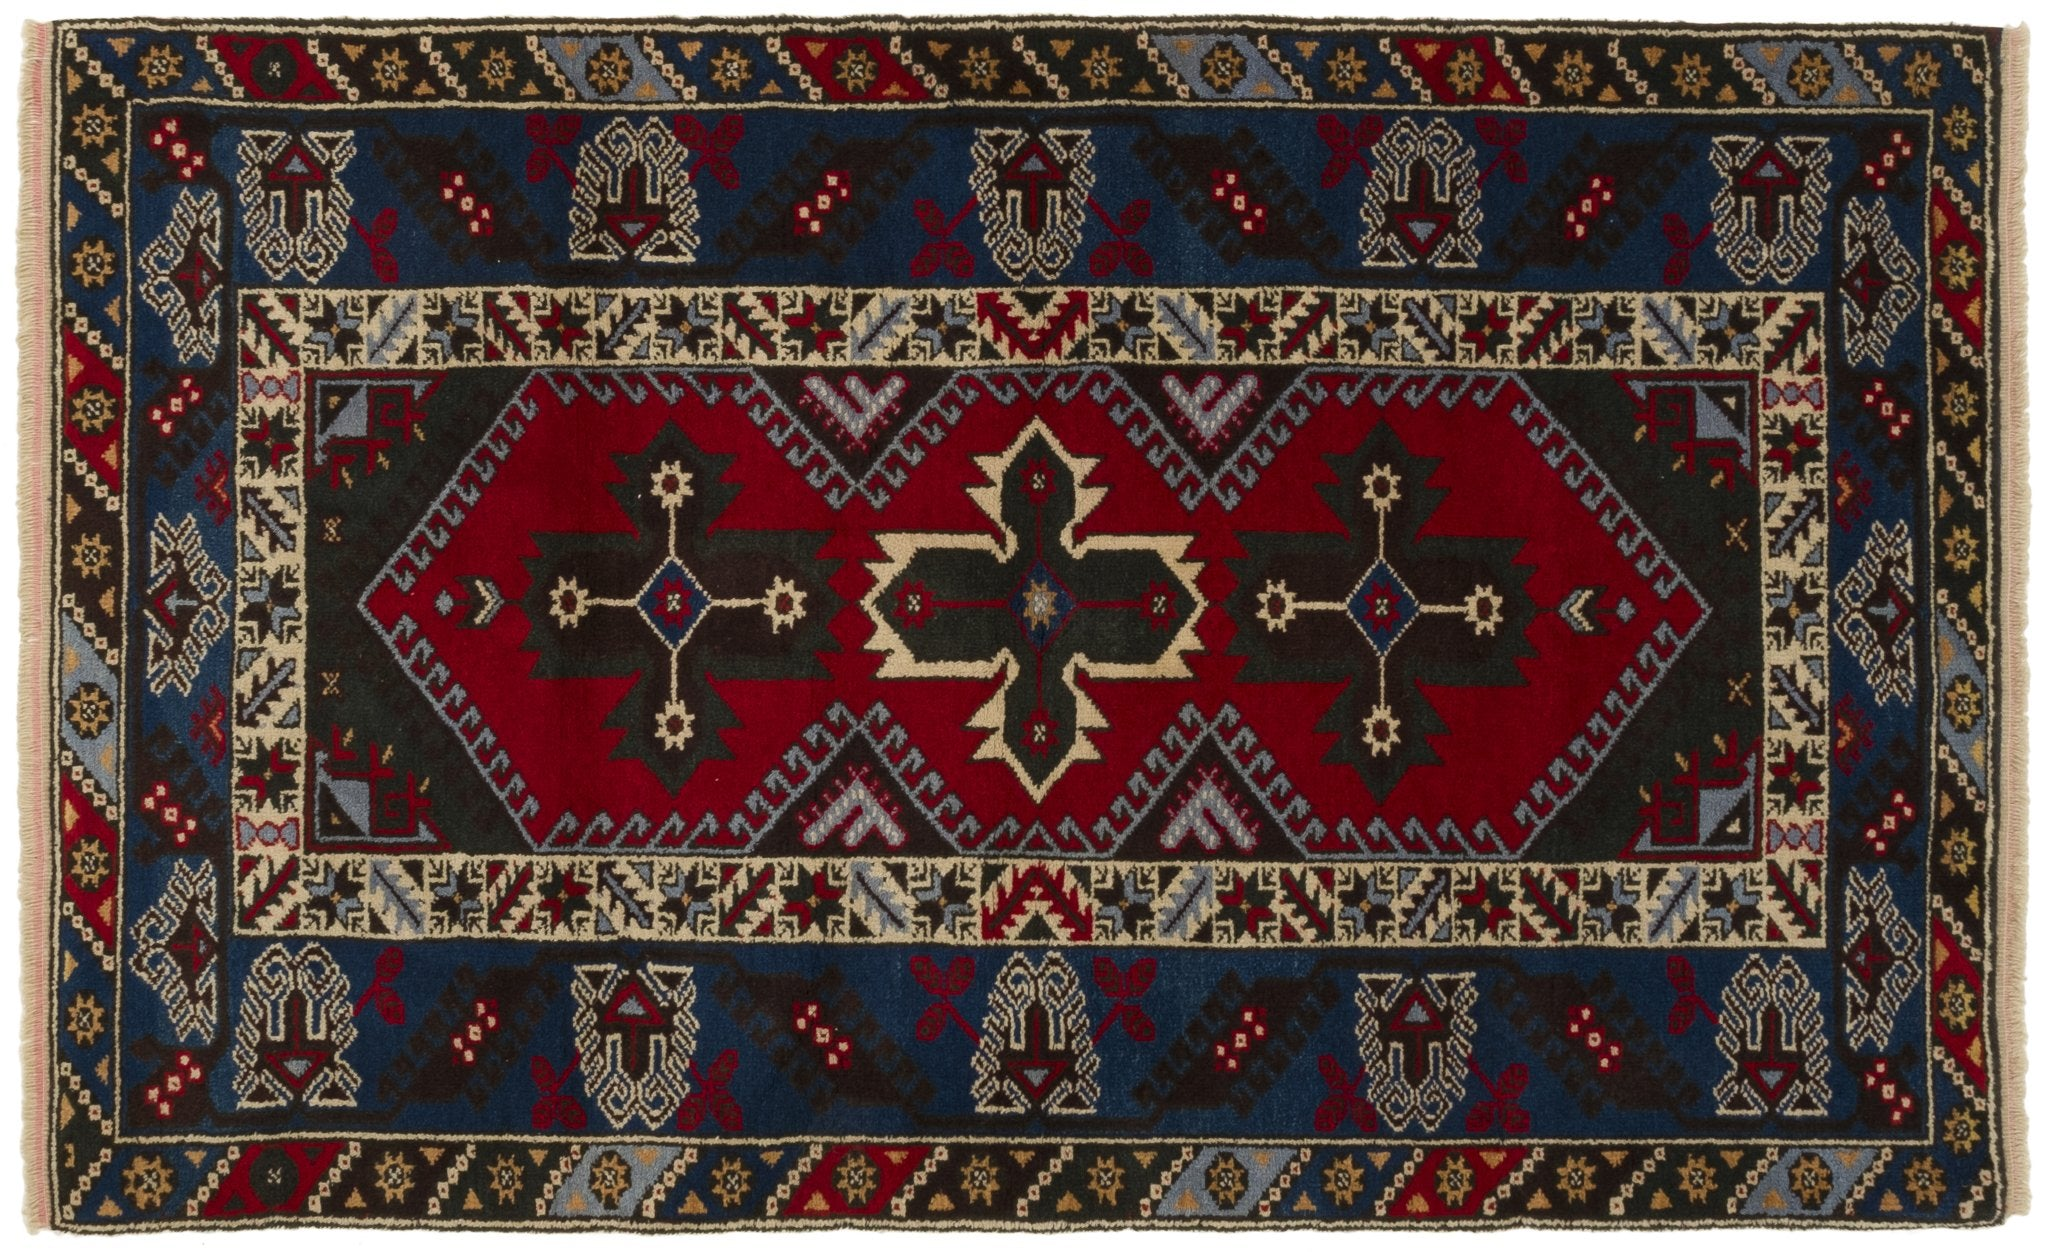 Vintage Turkish Rug Edzus